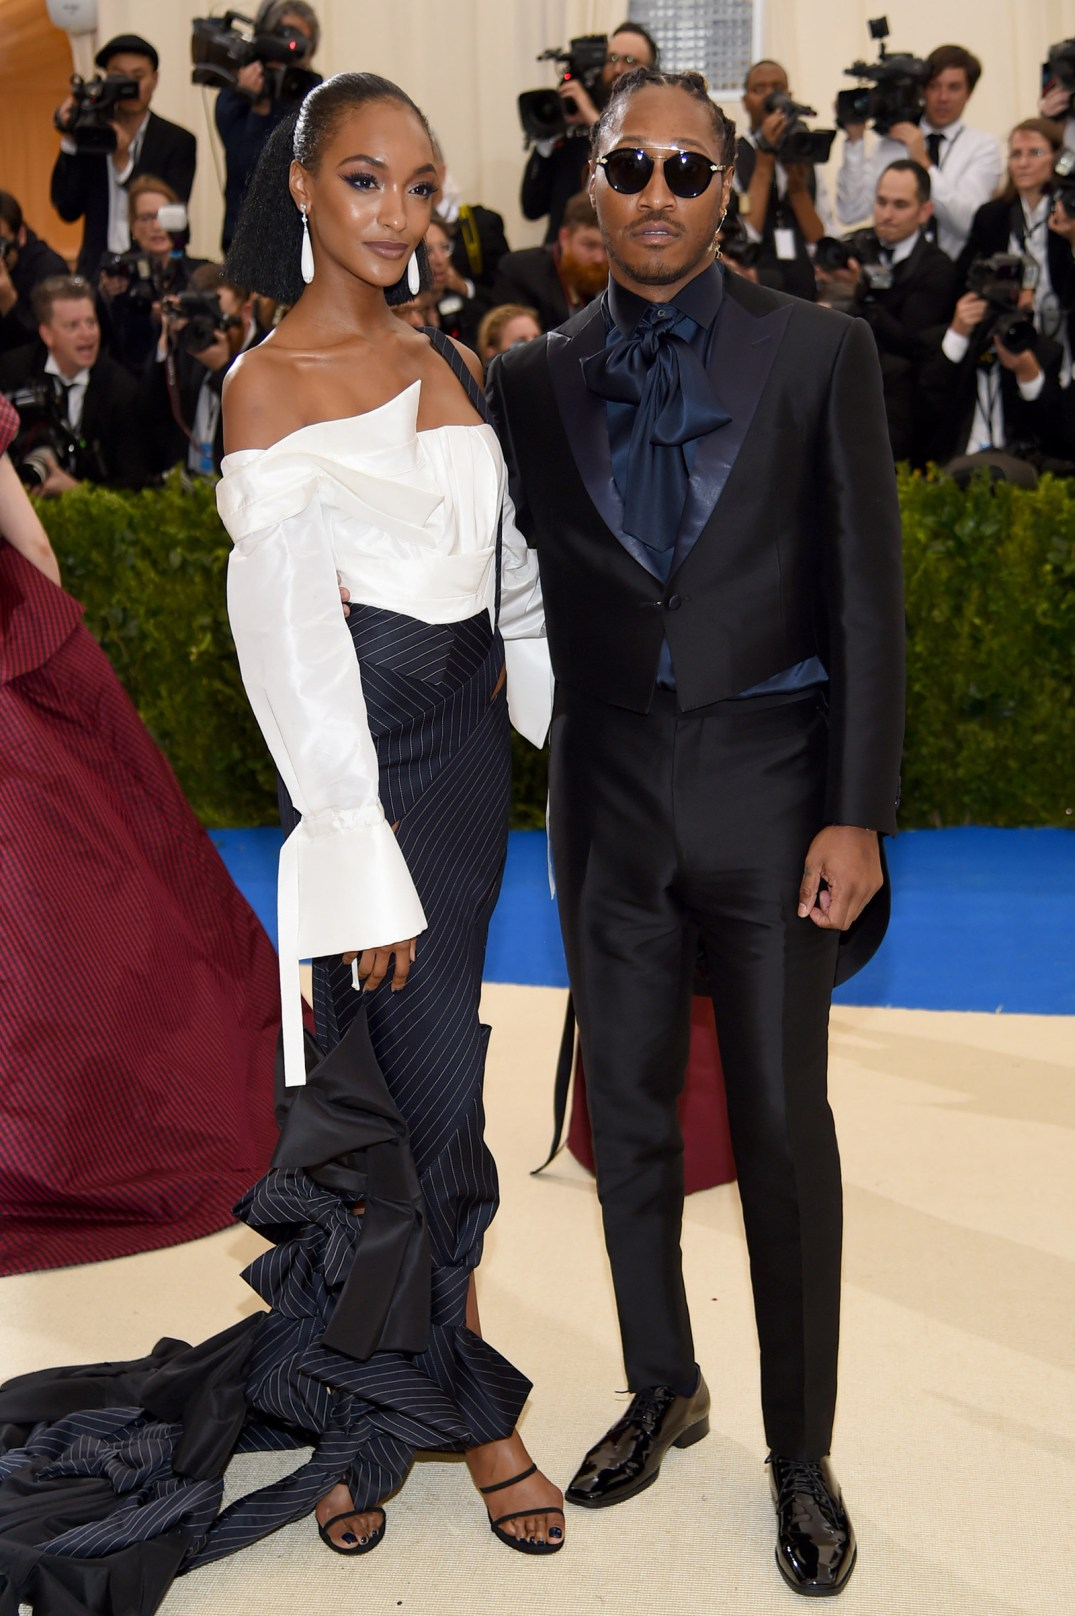 Jourdan Dunn and Future at Met Gala in HM